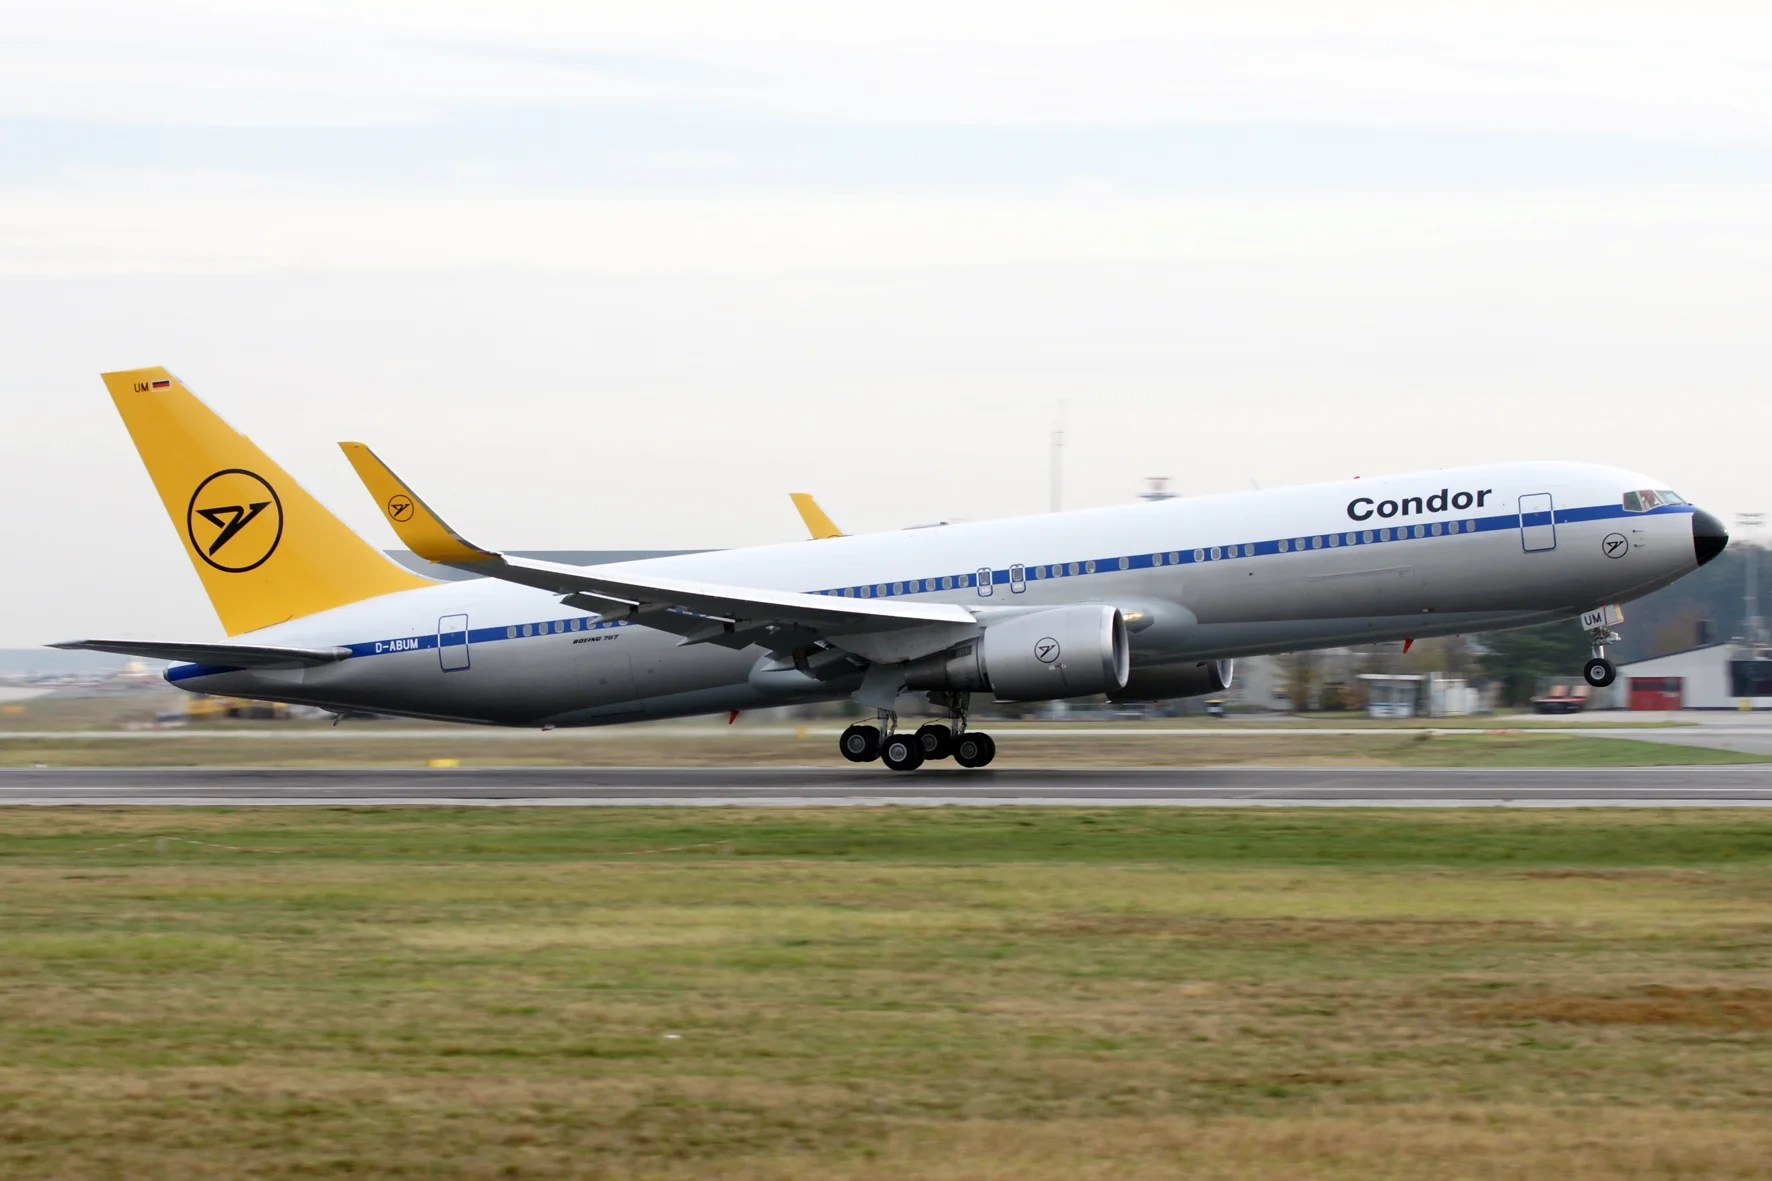 Polish airline LOT acquires German carrier Condor